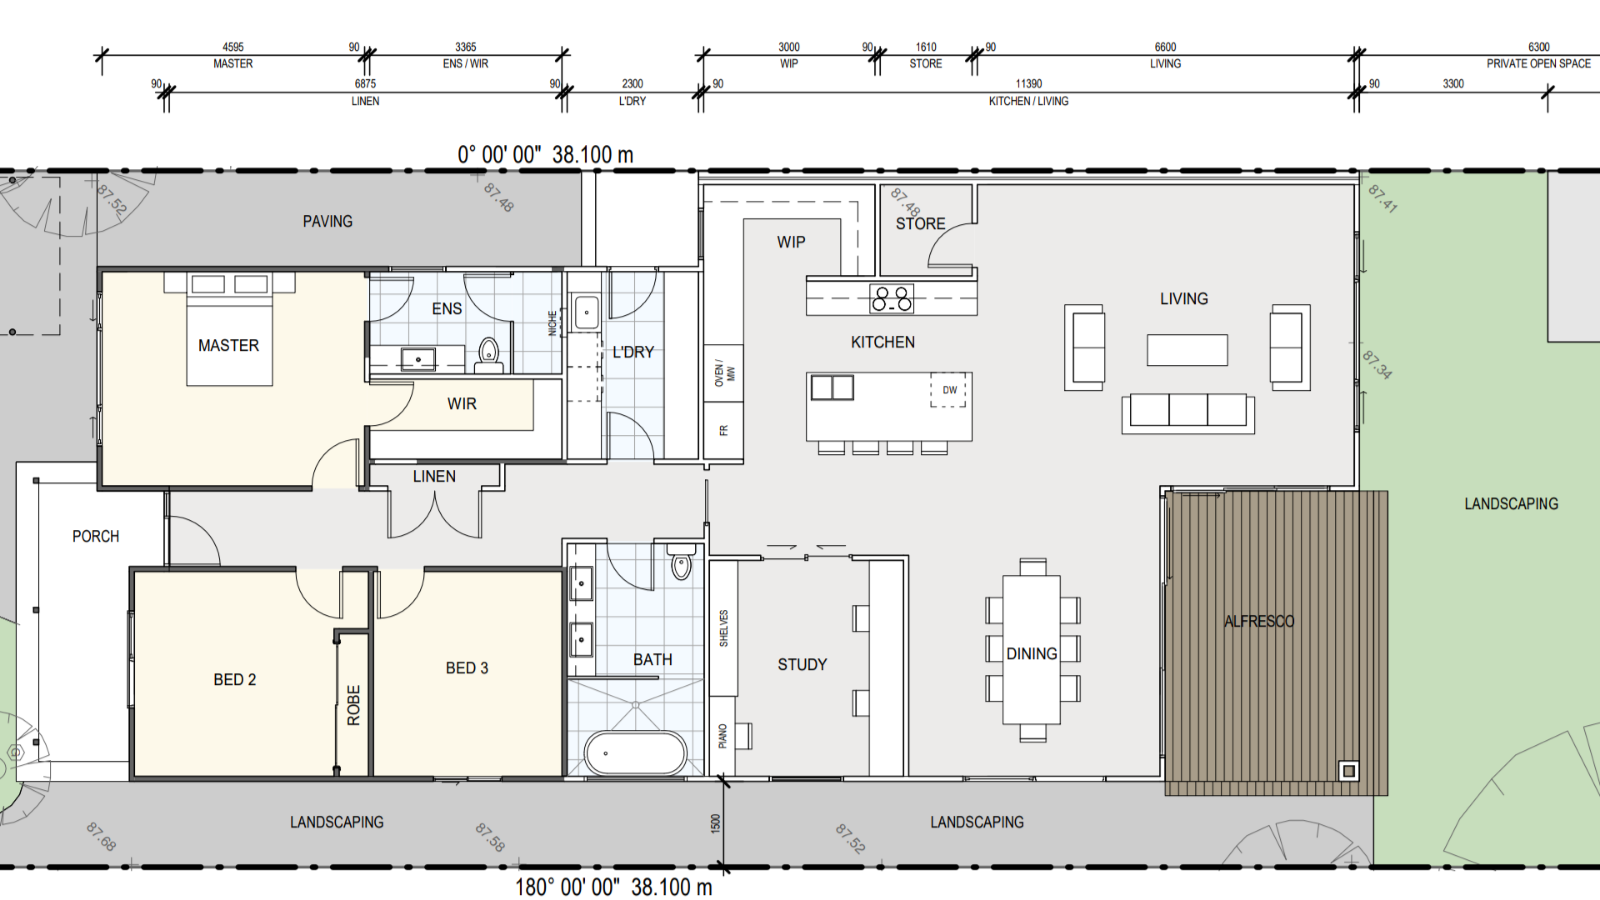 Feng Shui tips/advice on my proposed floorplan?